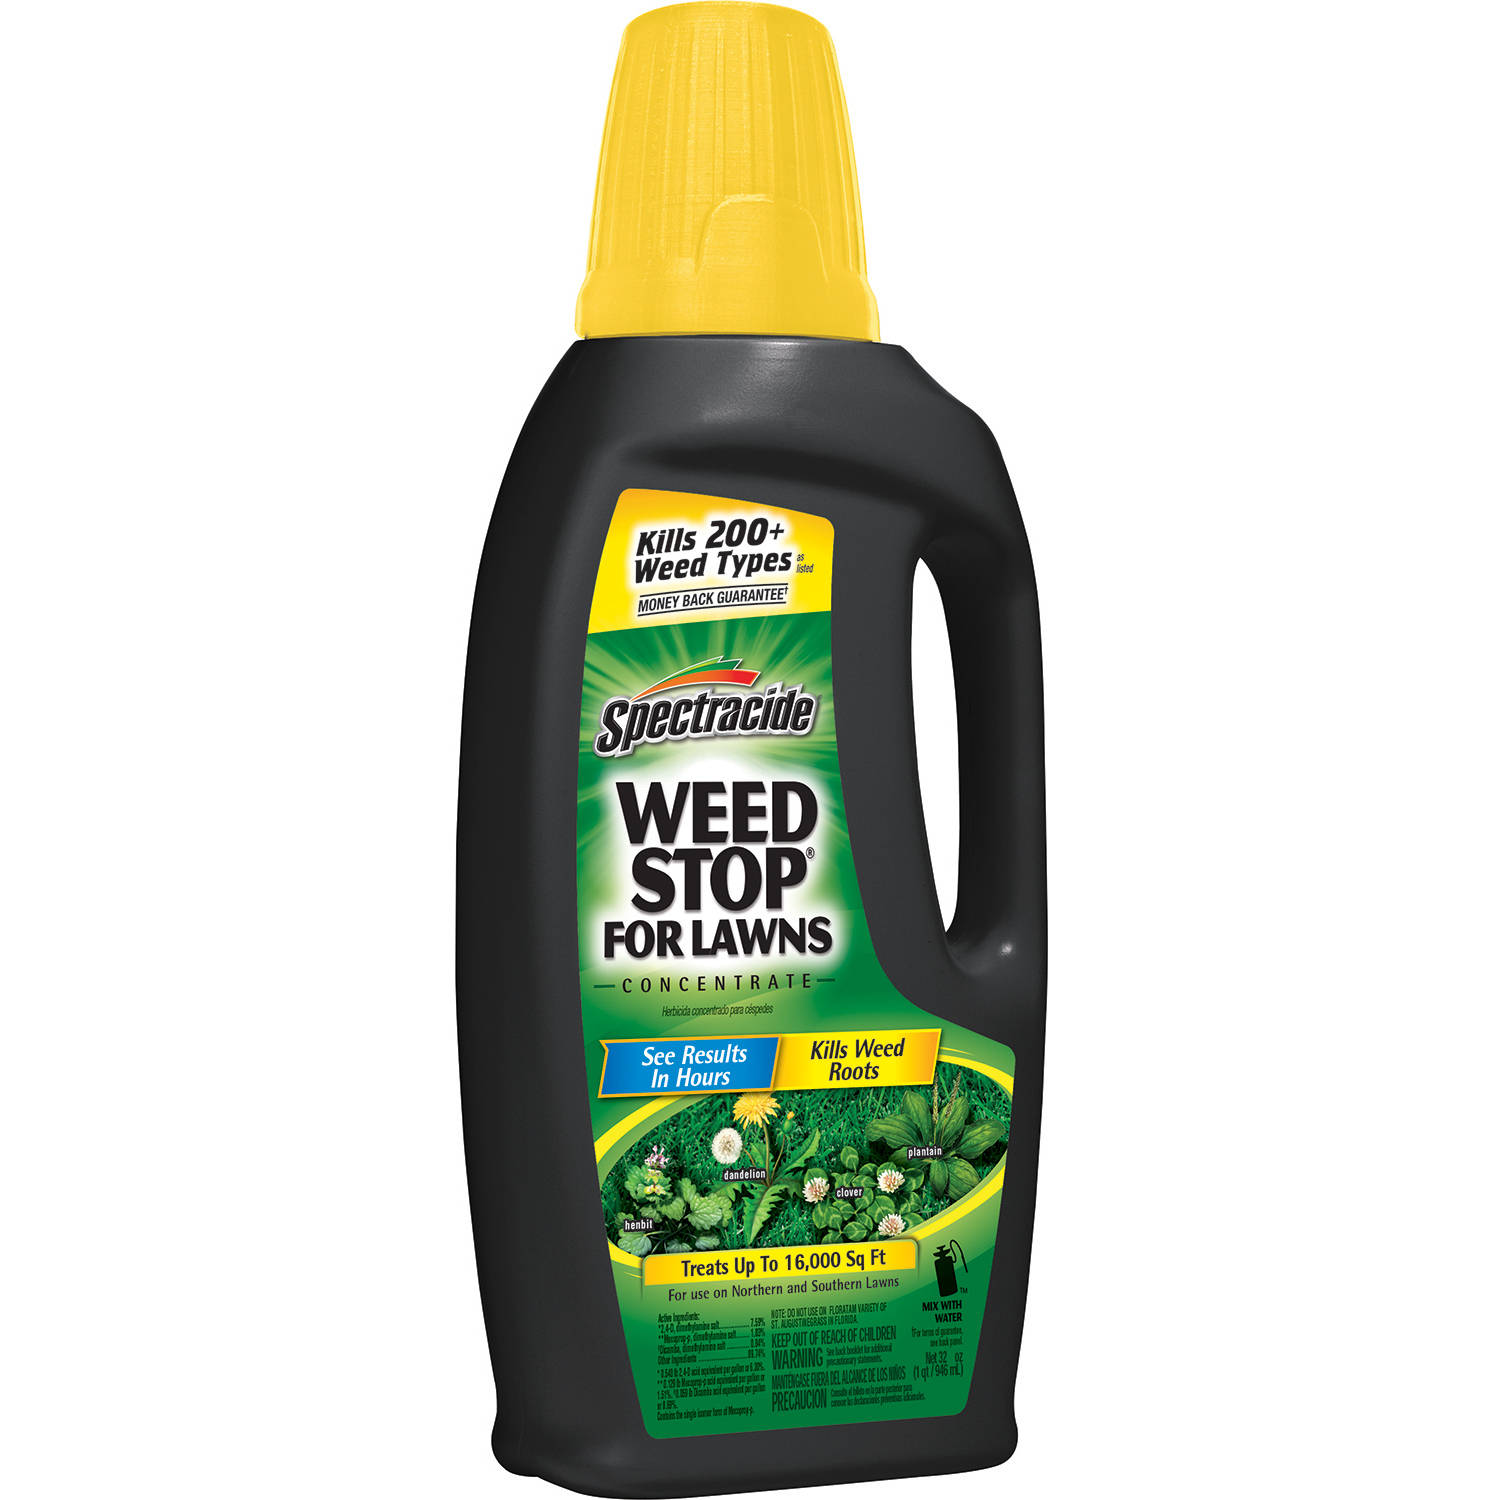 Spectracide Weed Stop for Lawns Concentrate, 32 oz